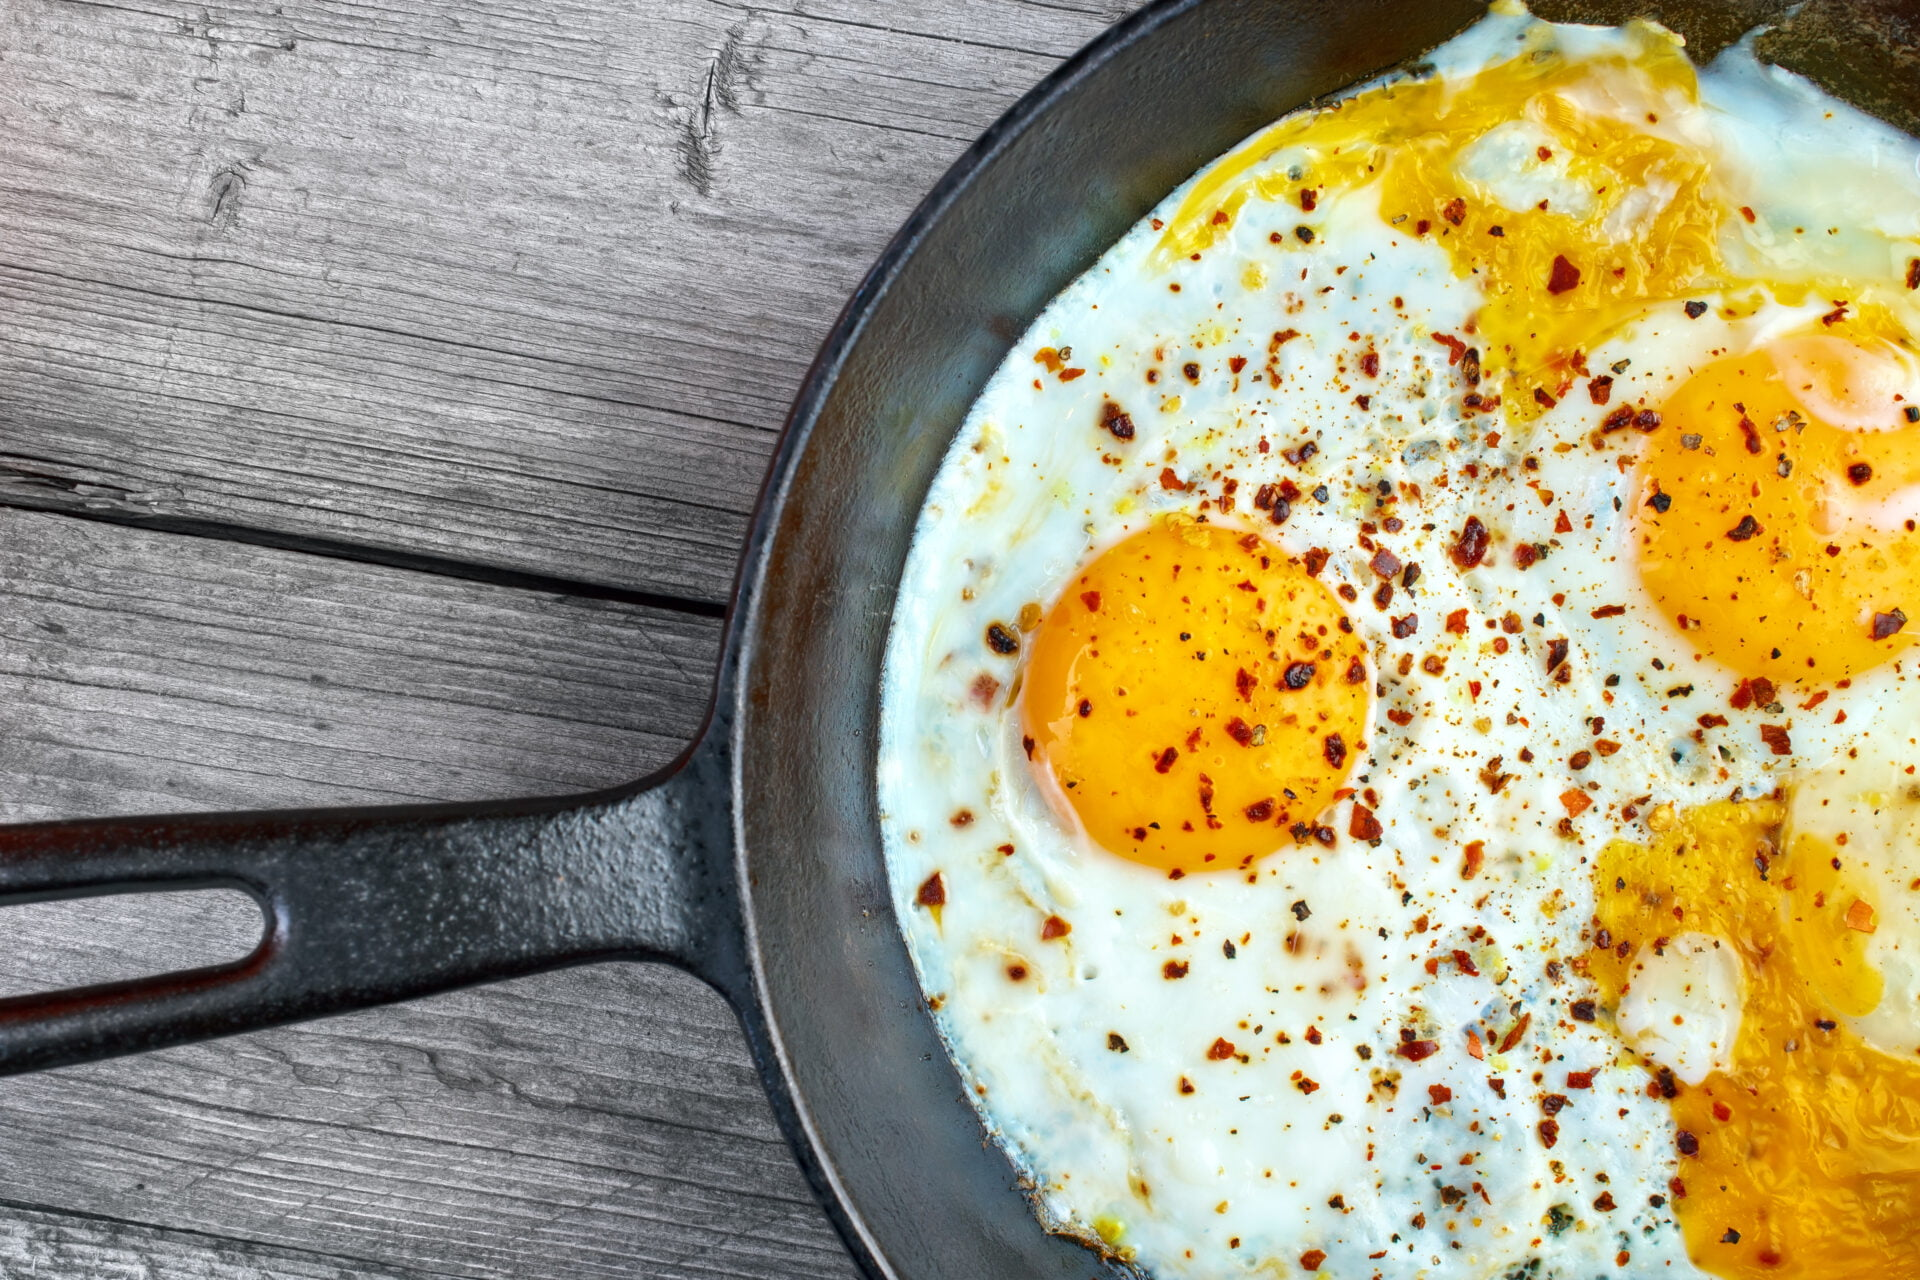 Fried eggs in cast iron frying pan on gray wooden surface